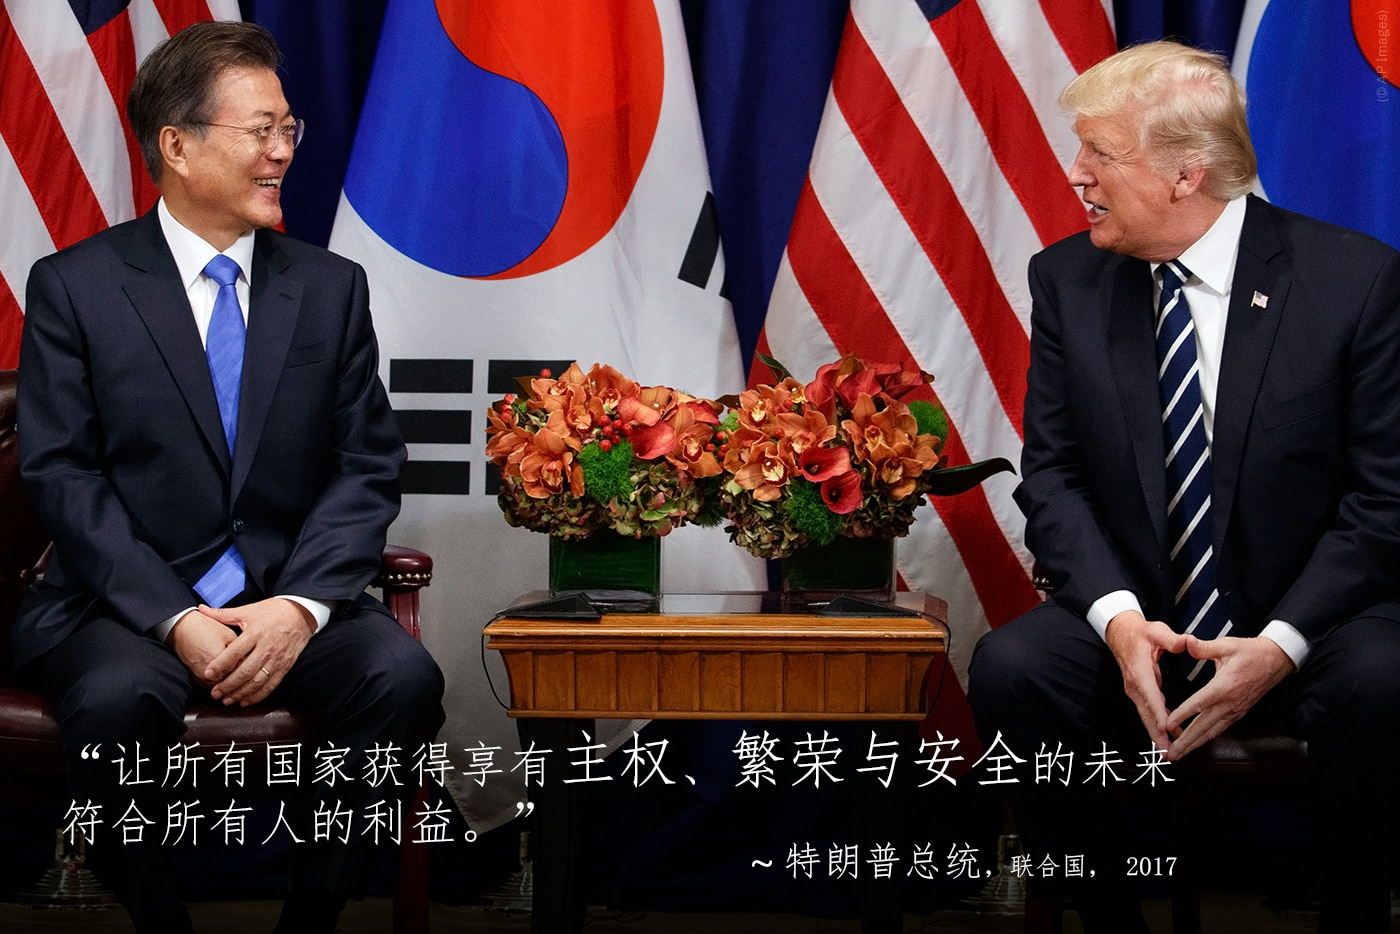 Moon Jae-in and Donald Trump, with quote overlaid (© AP Images)